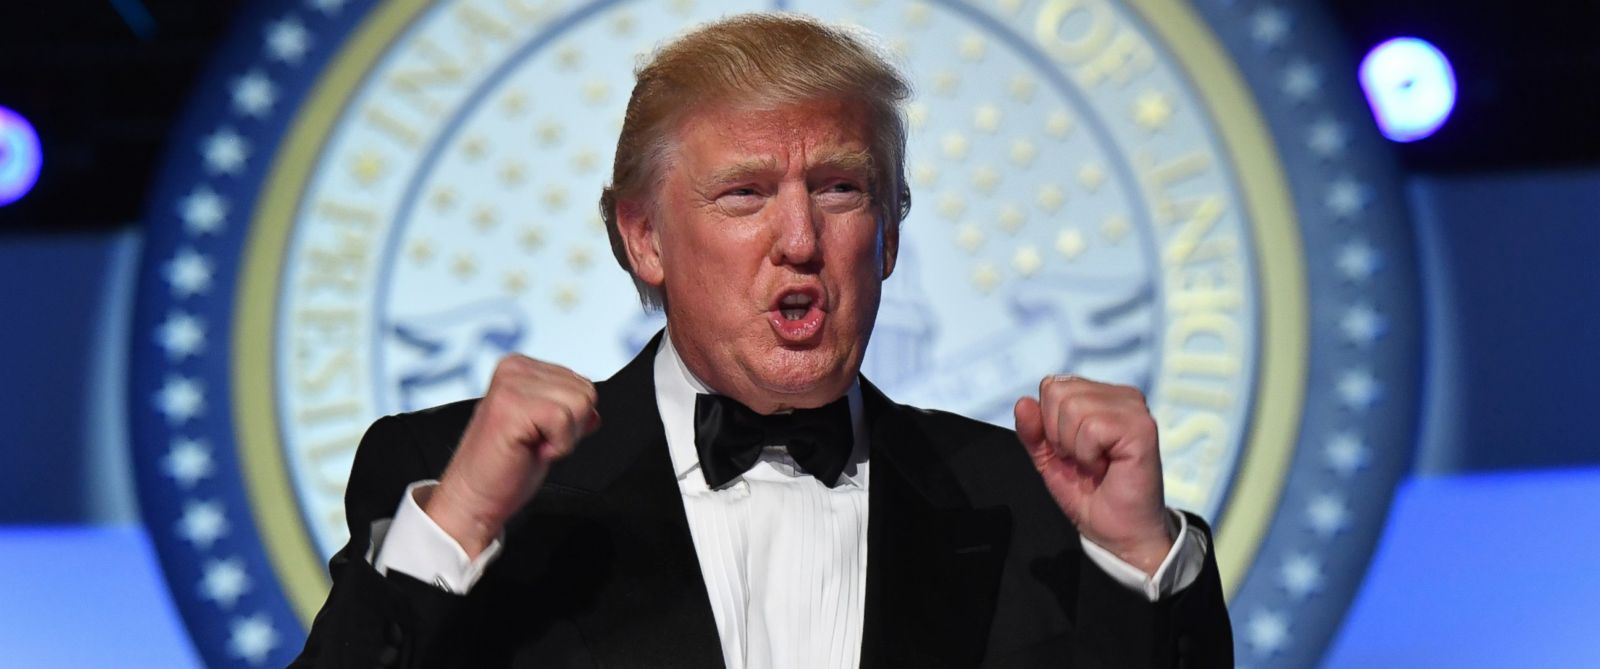 Interest groups donated to Trump's record-breaking inauguration fund